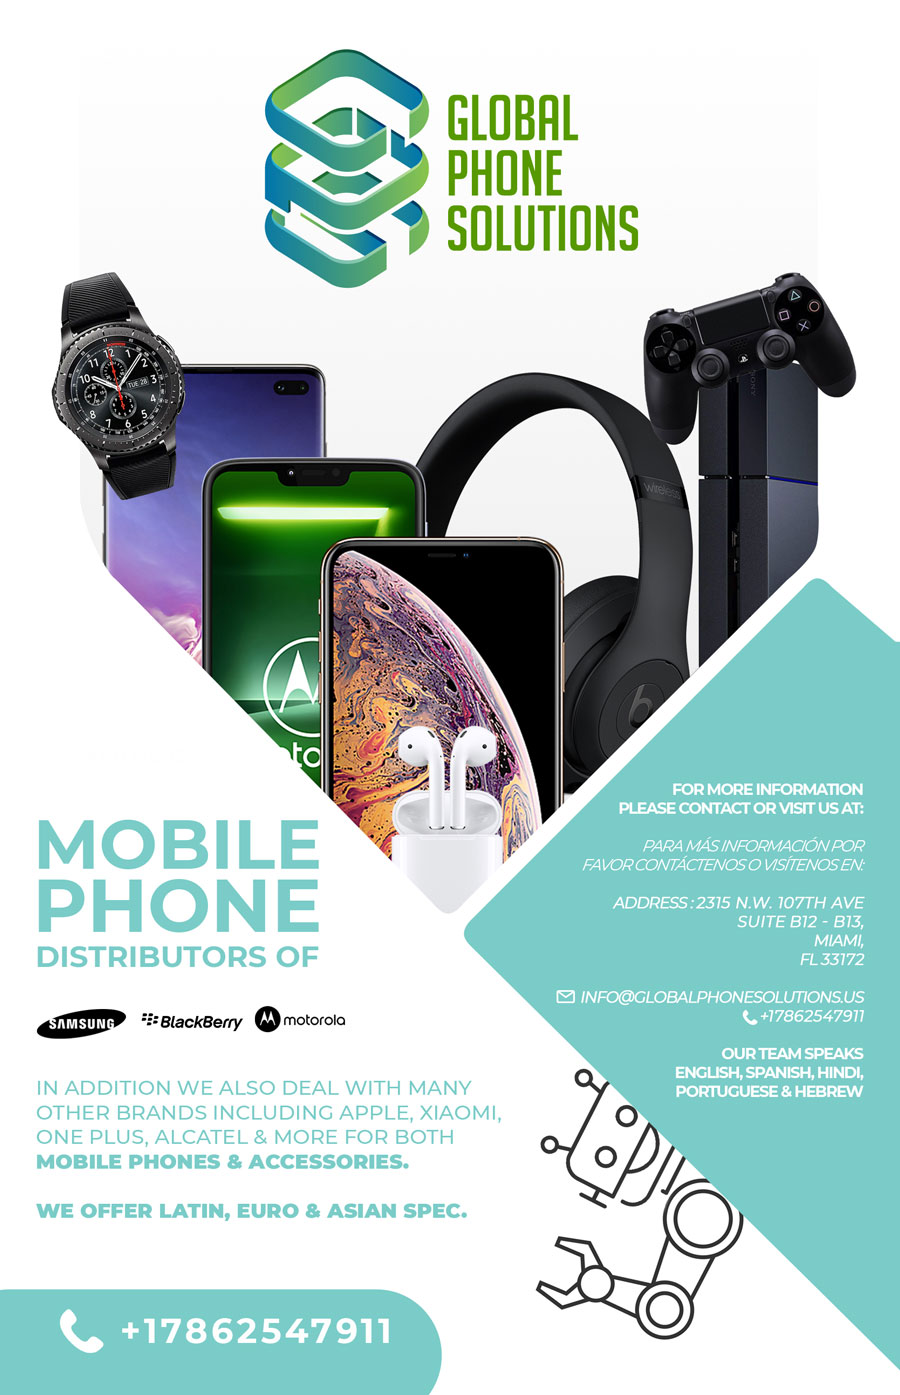 Global Phone Solutions: Distribuidor de Celulares & Accesorios